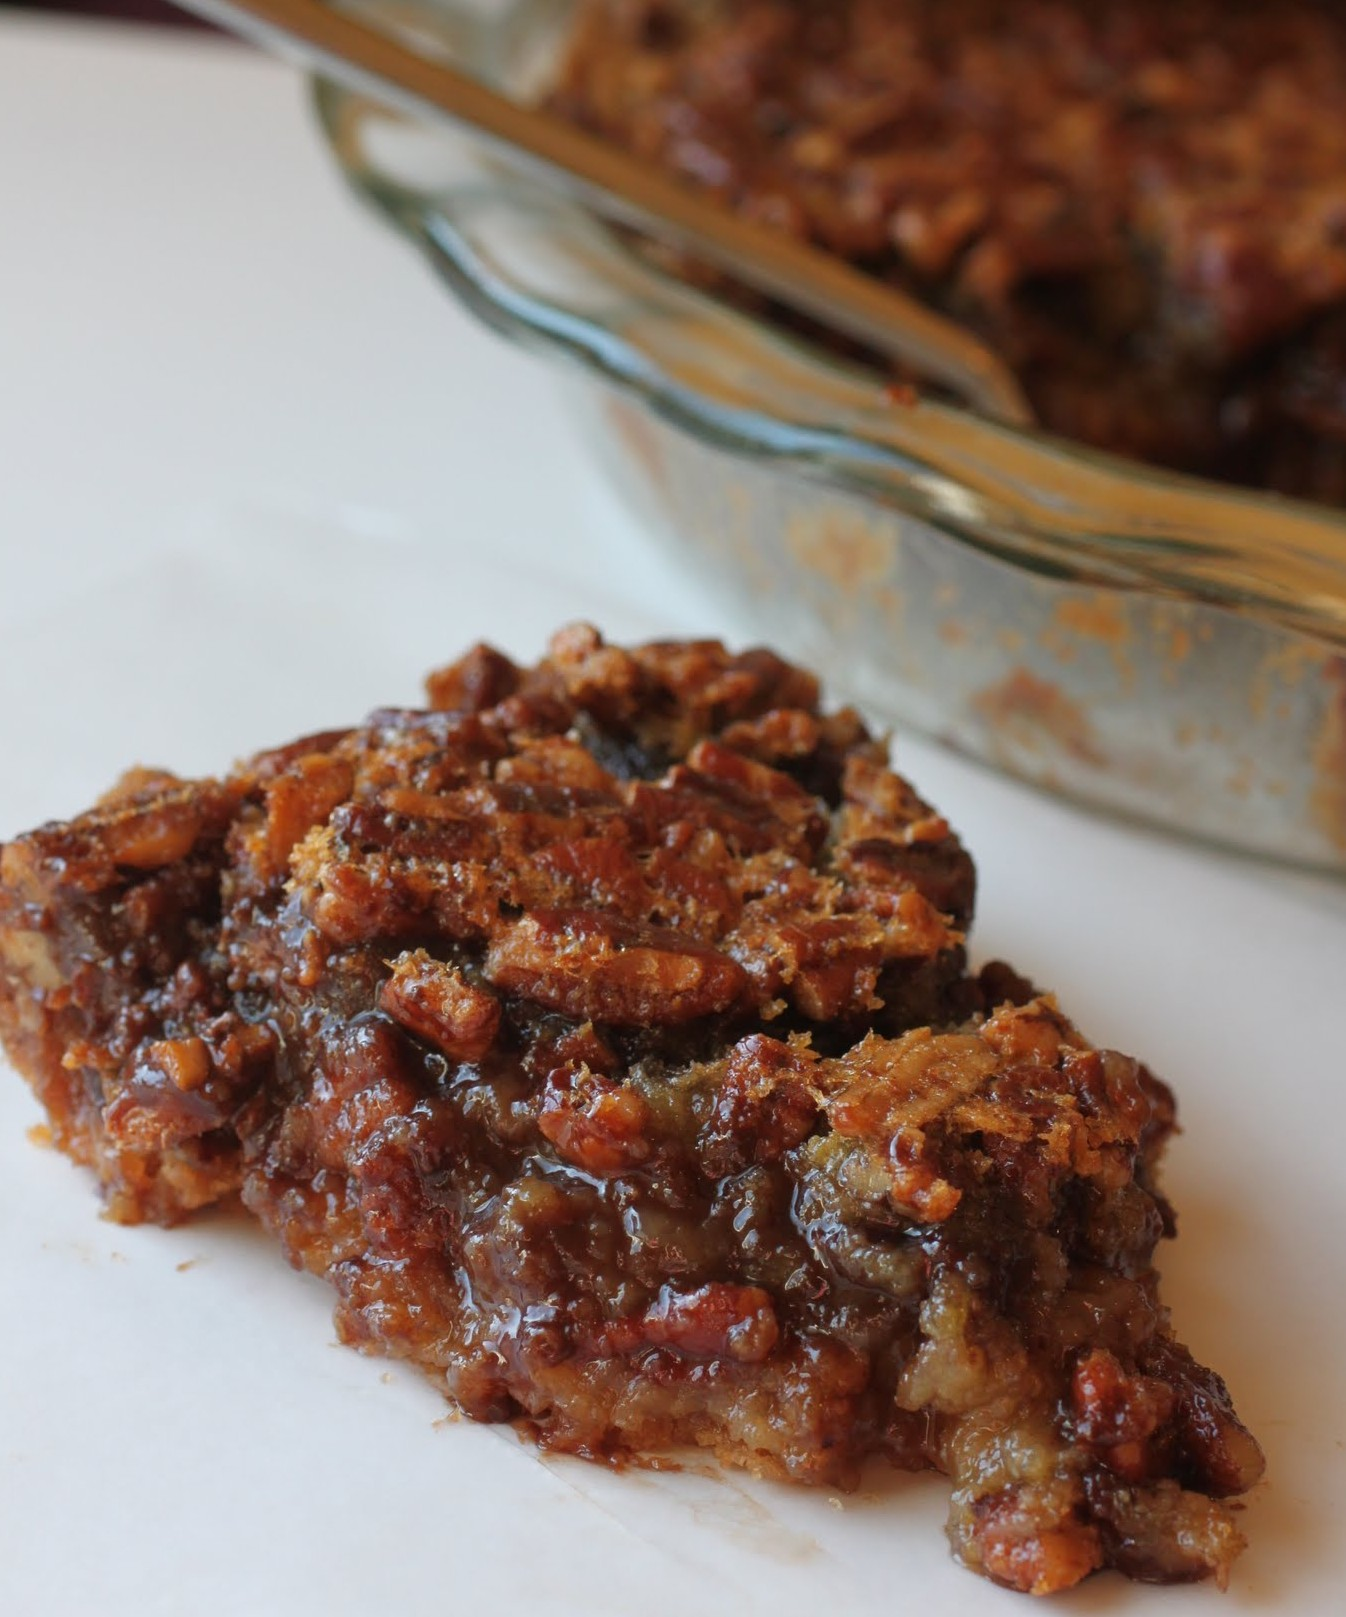 Chocolate Pecan Pie | Just About Baked